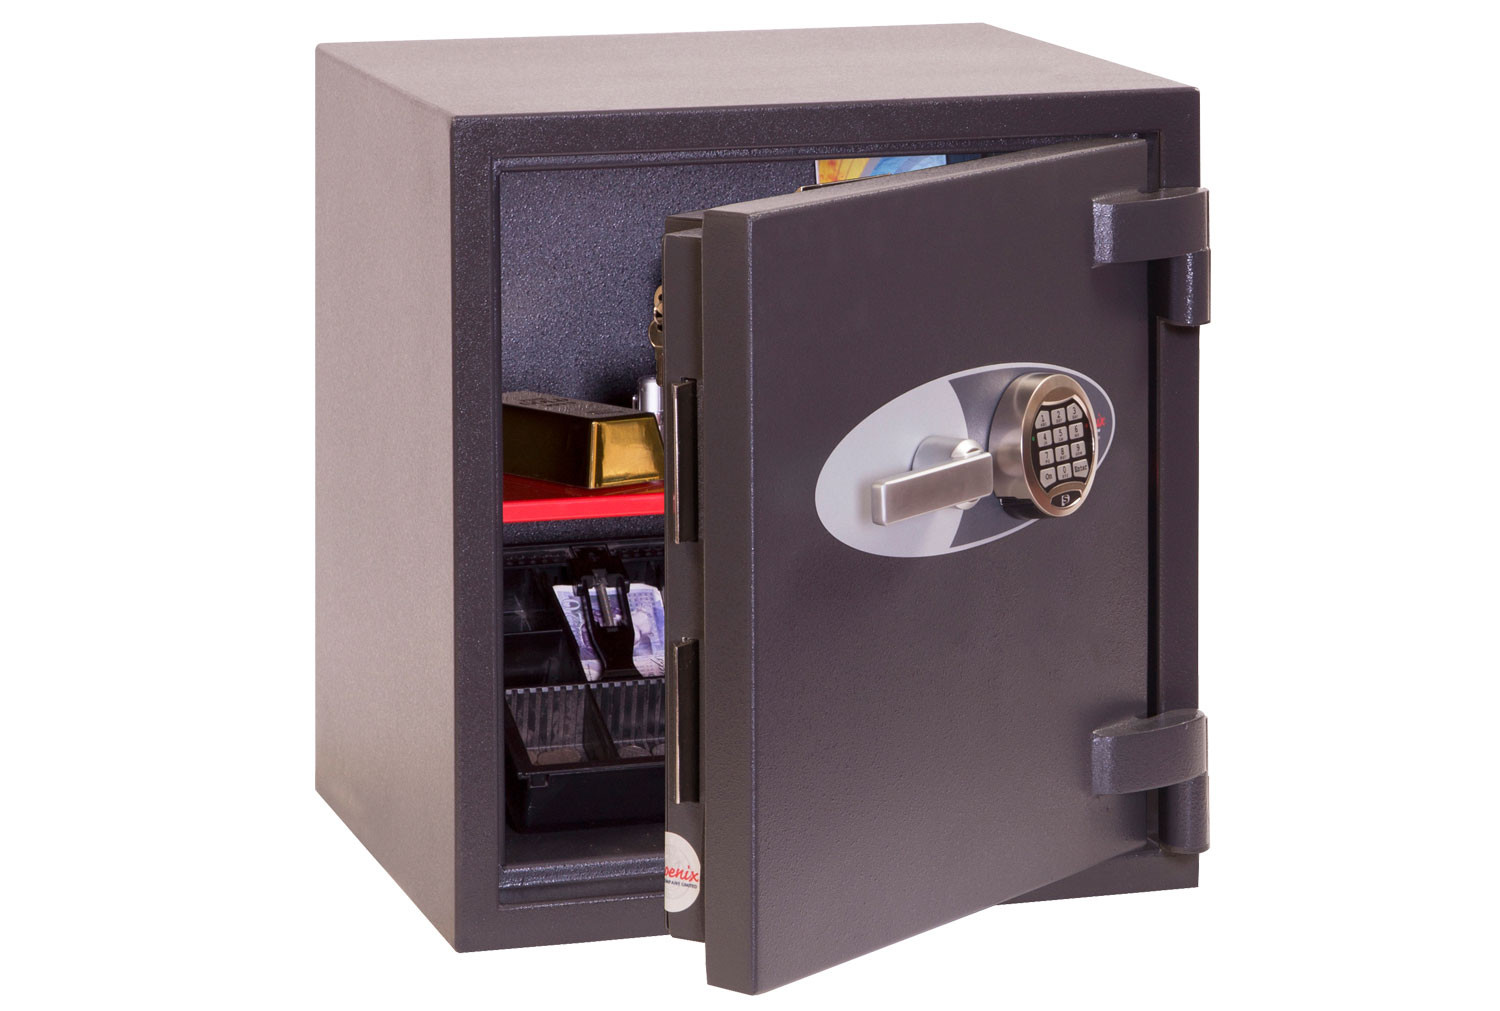 Phoenix Elara HS3551E High Security Safe With Electronic Lock (56ltrs)